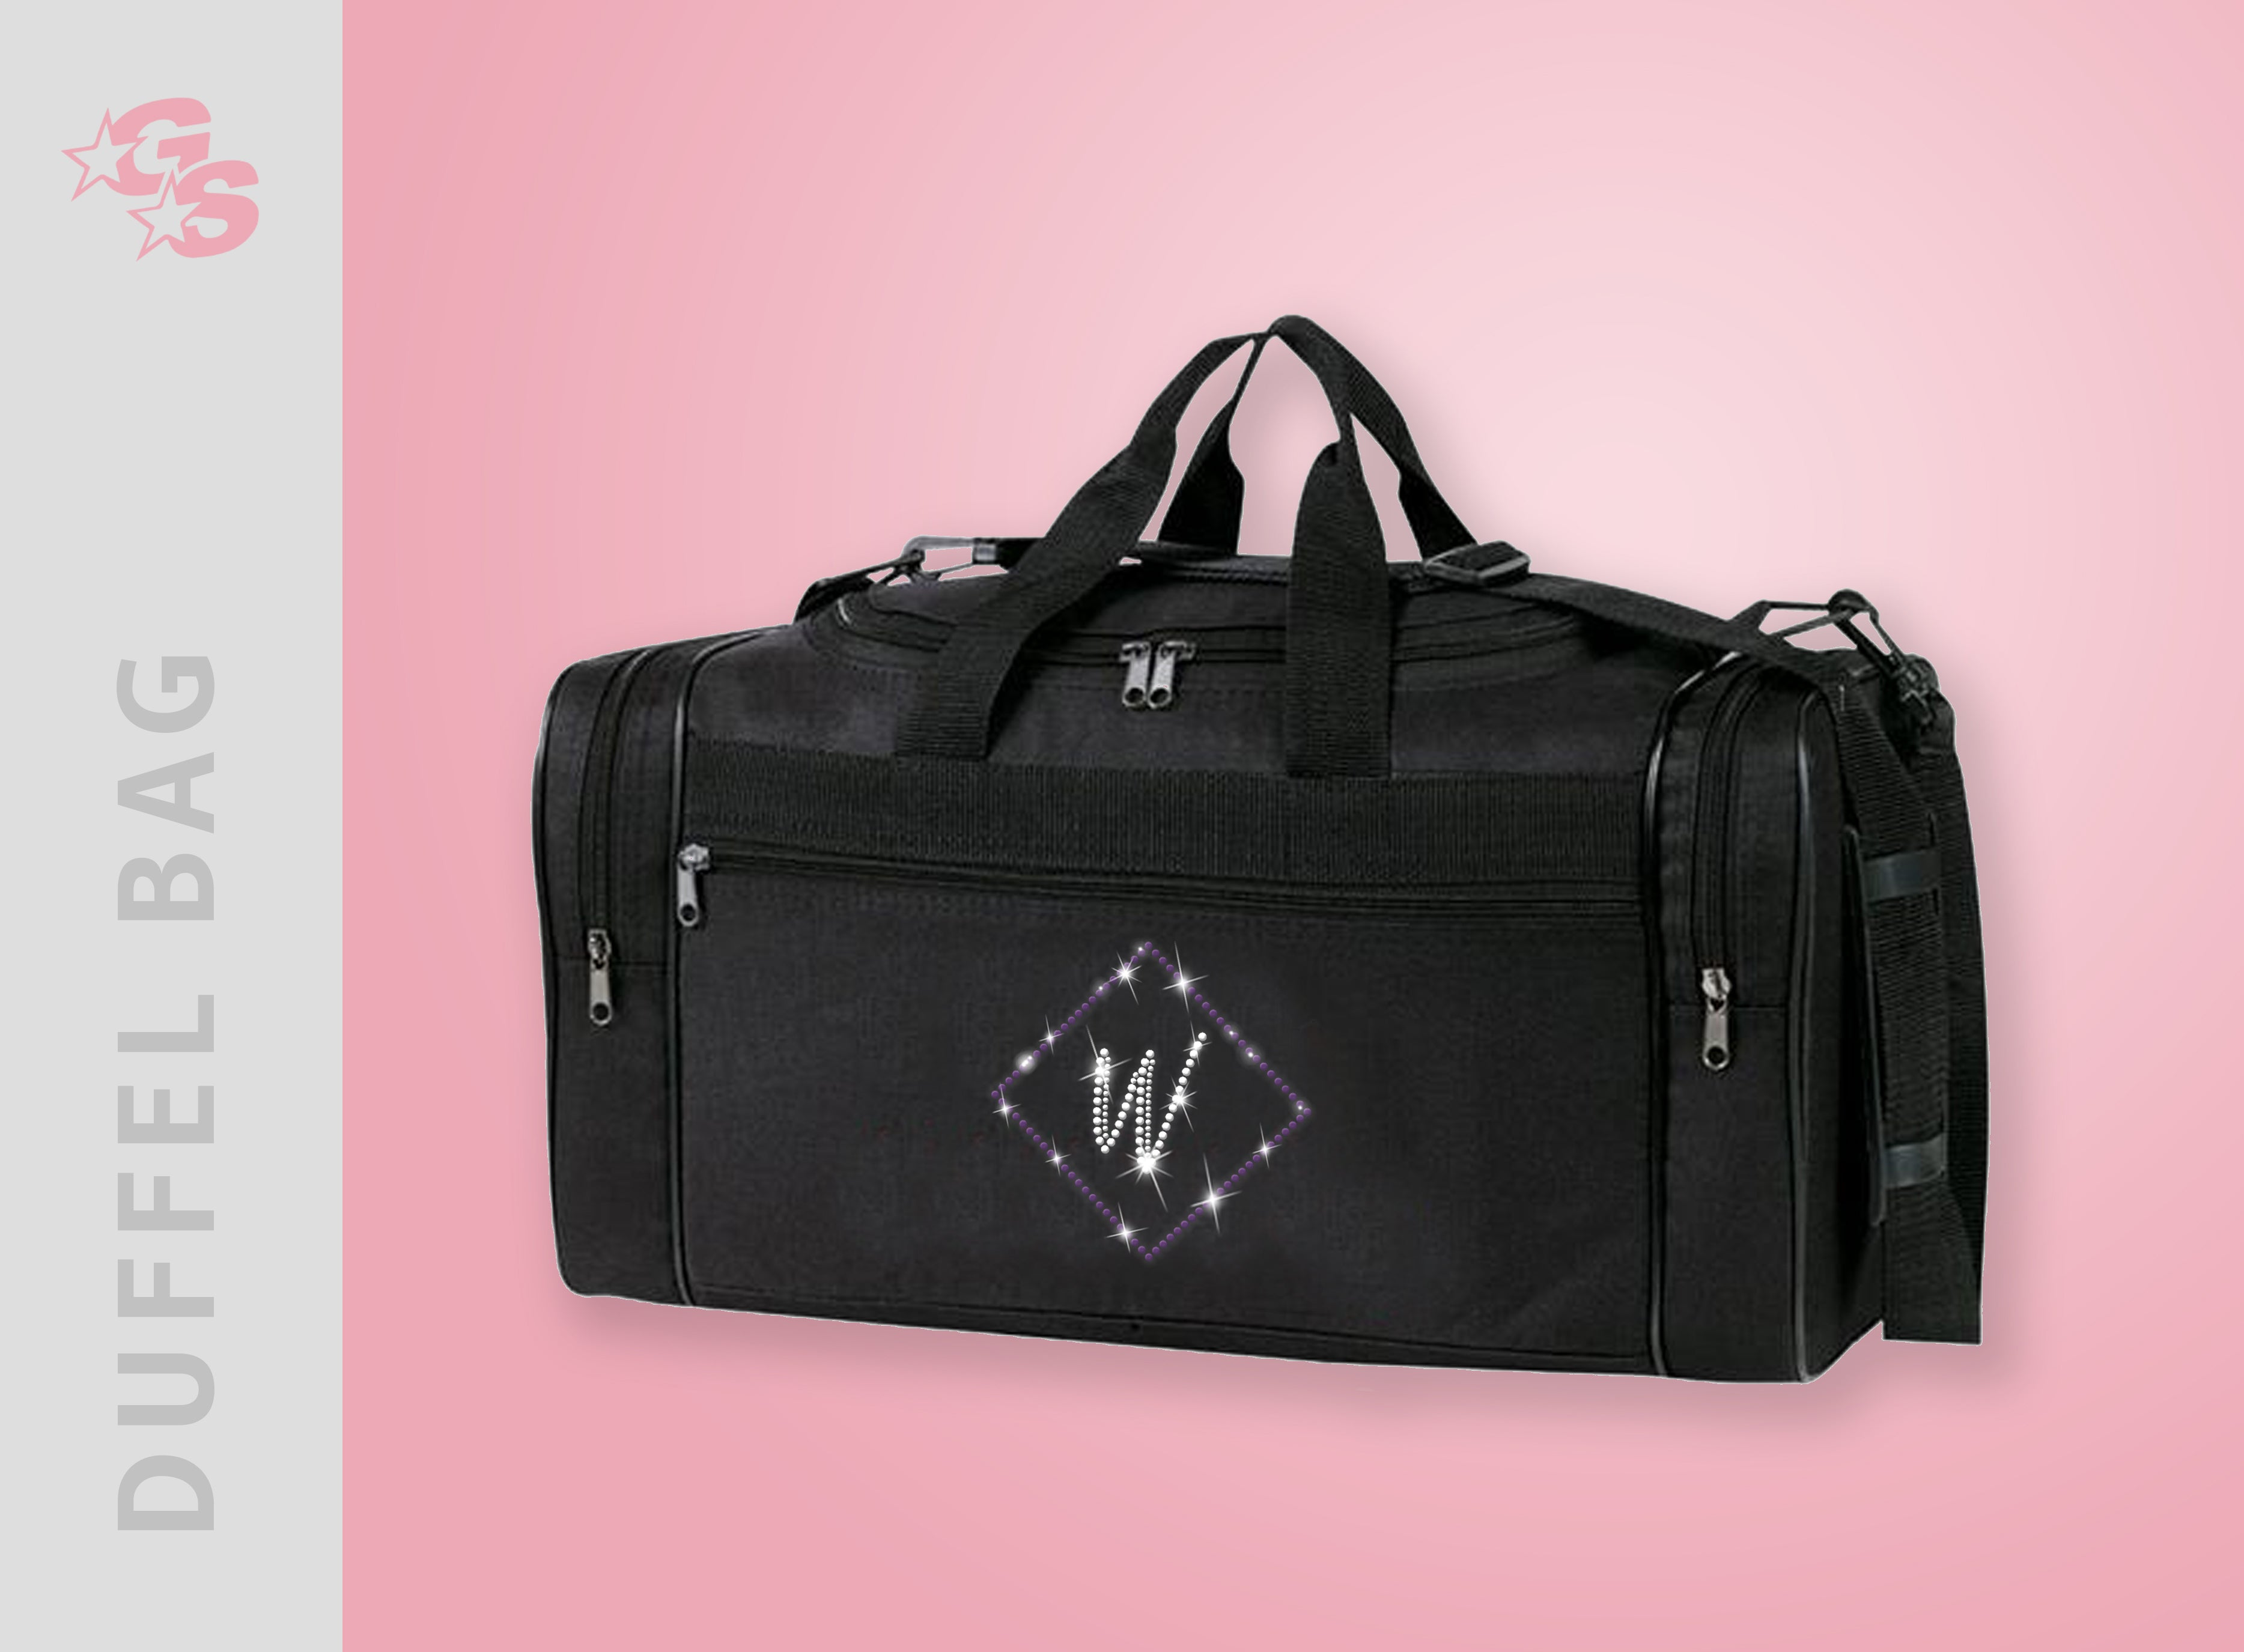 West Austin Dance Academy Duffel Bag